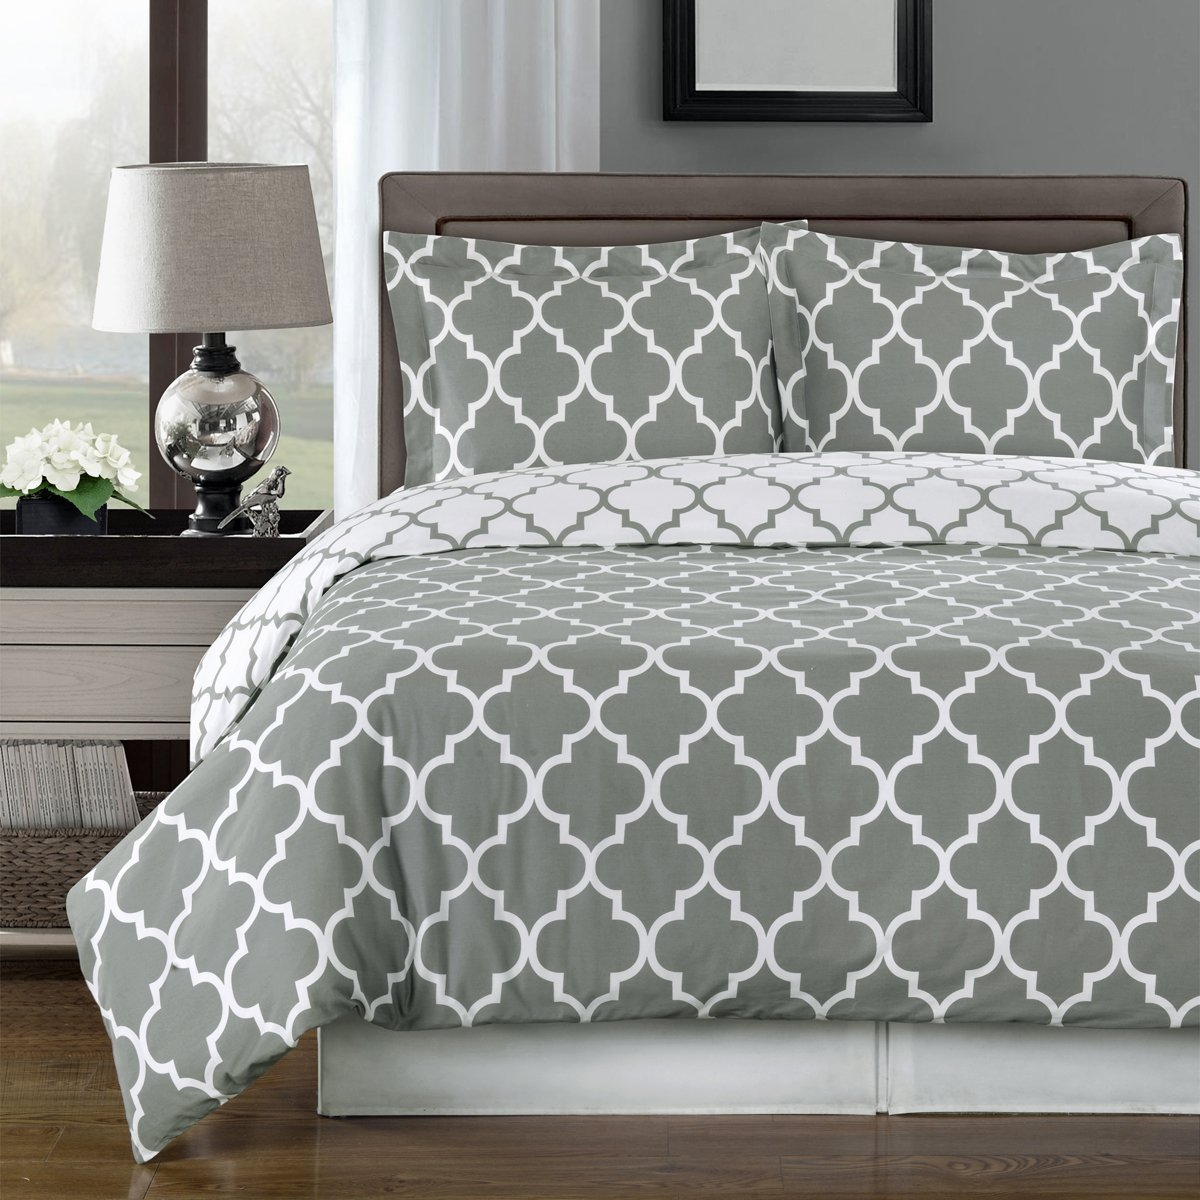 amazoncom gray and white meridian pc full  queen comforter set  - amazoncom gray and white meridian pc full  queen comforter set  cotton  thread count by royal hotel home  kitchen